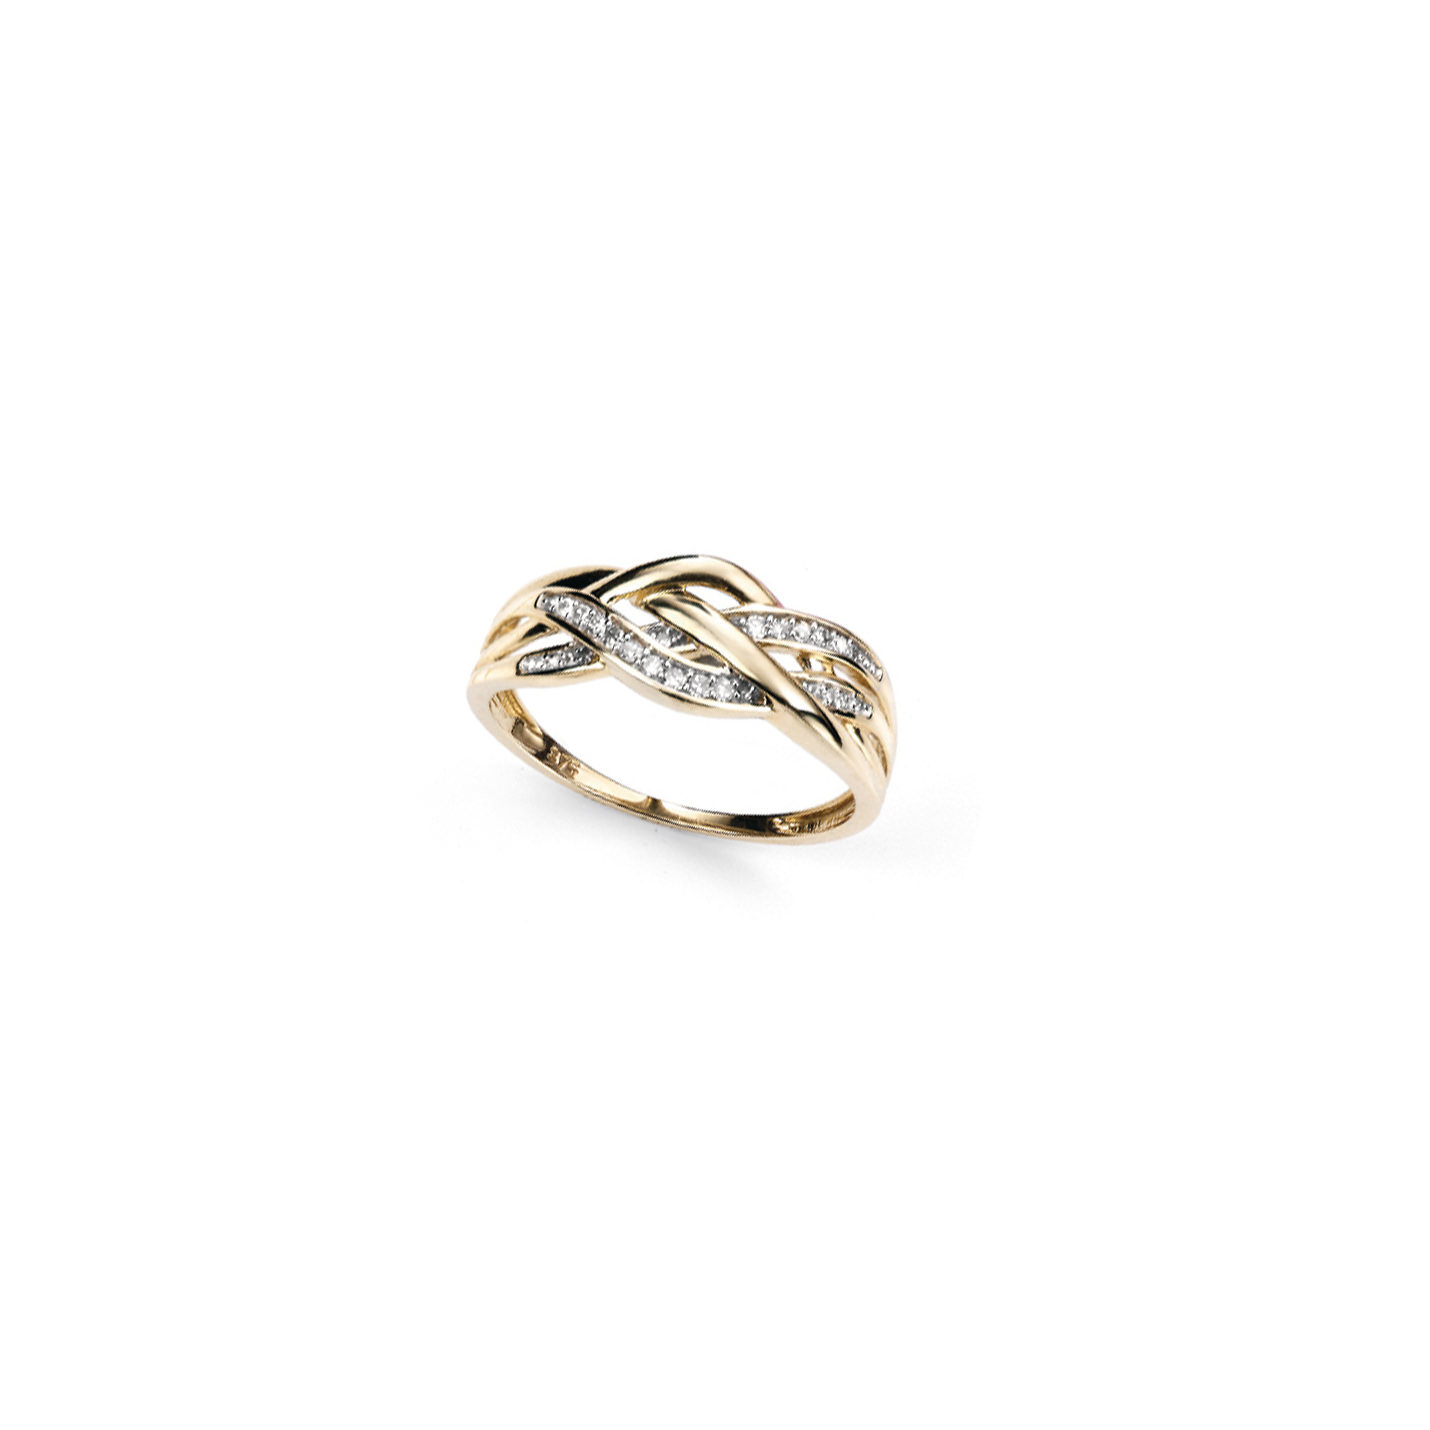 With the look of woven fabric this yellow gold and diamond ring is sure to turn heads!  9ct. yellow gold plaited diamond ring.